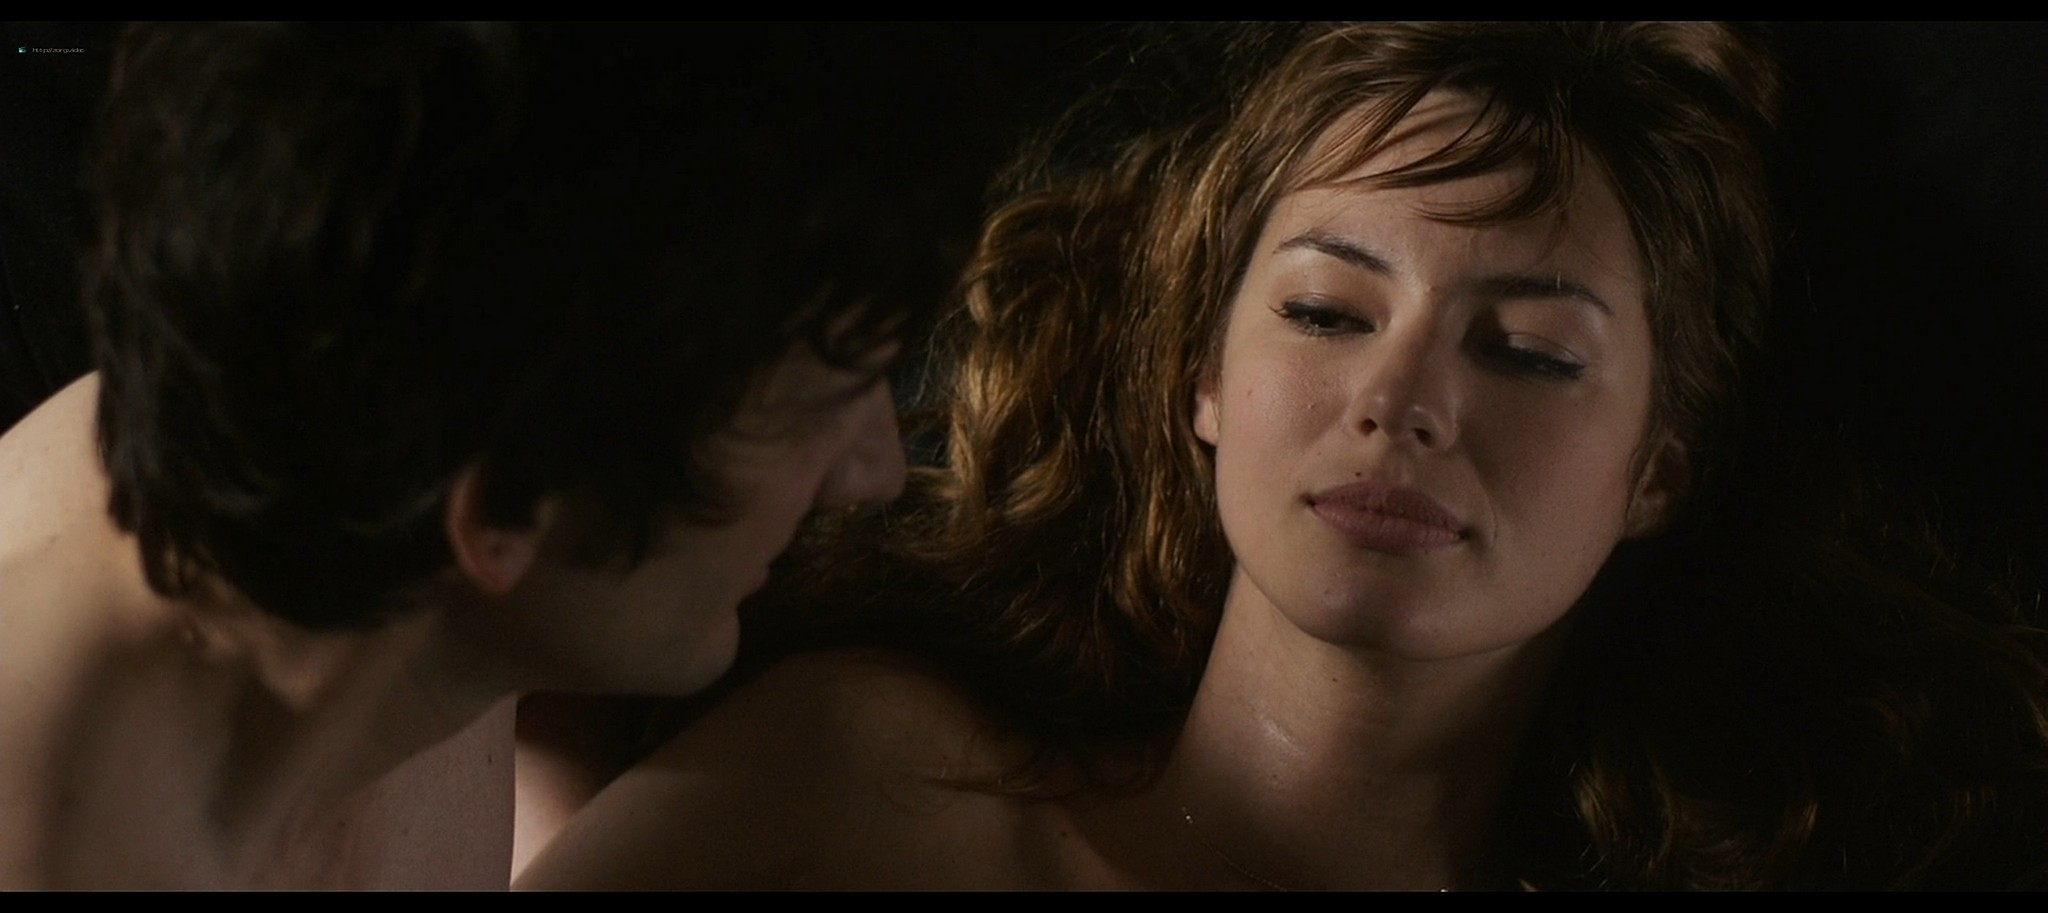 Louise Bourgoin nude and sex and Elisa Sednaoui nude LAmour Dure Trois Ans 2012 1080p BluRay 6